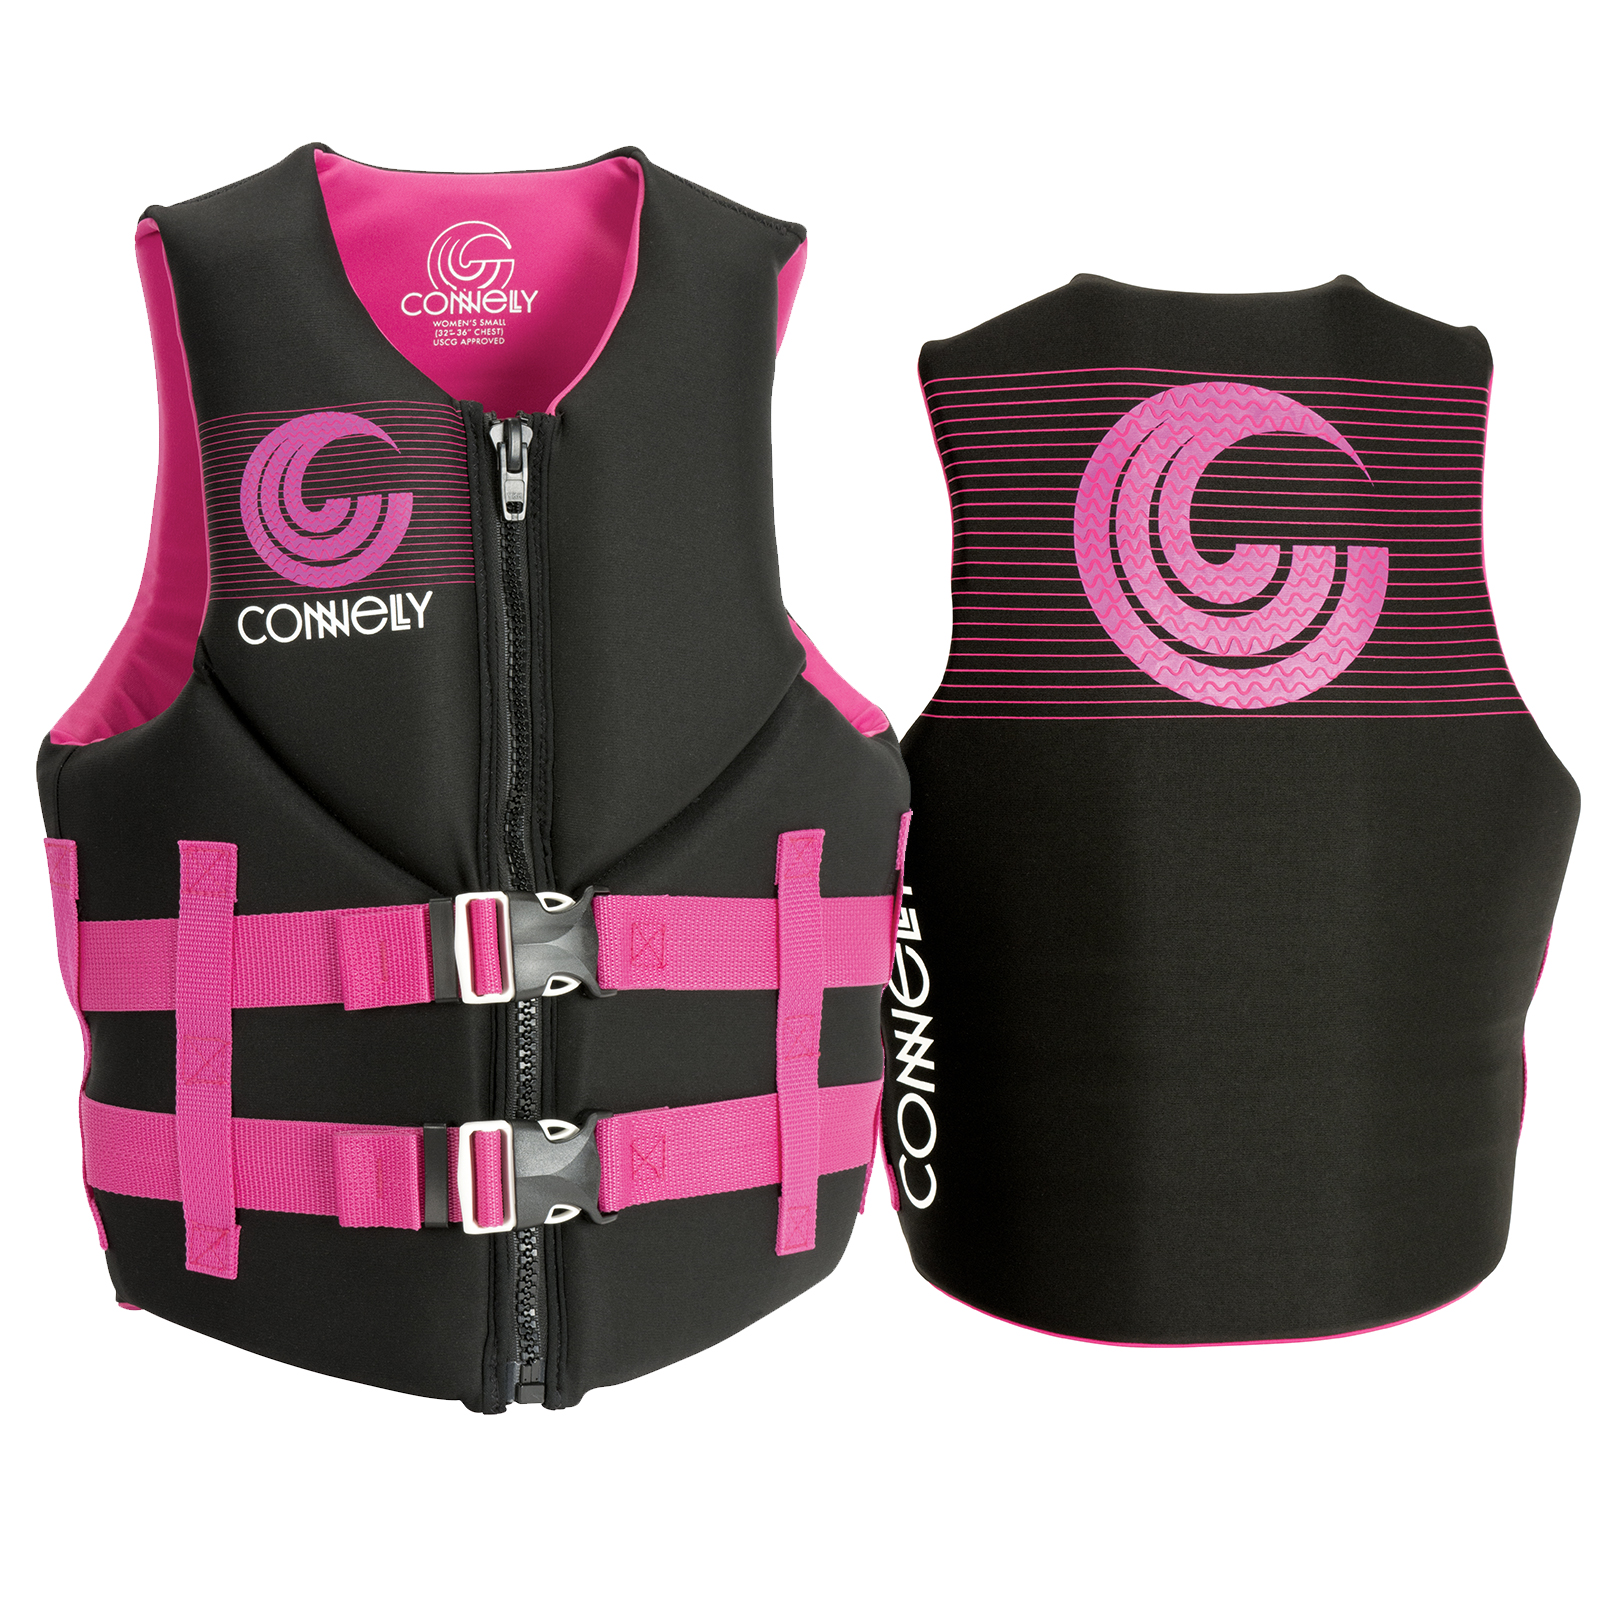 PROMO WOMEN'S NEO LIFE VEST - PINK CONNELLY 2018